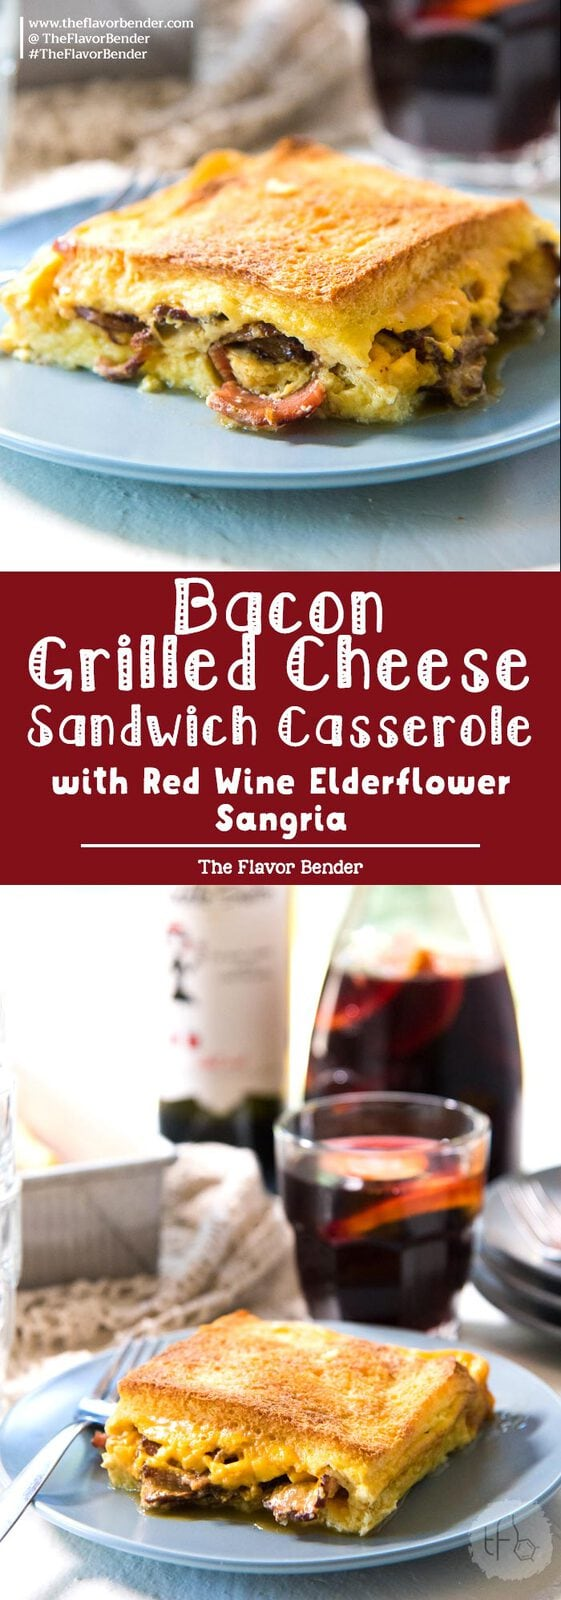 Bacon Grilled Cheese Sandwich Casserole - a delicious, make ahead breakfast casserole (or brunch casserole), that's easy to make and perfect for lazy mornings.#MiddleSisterWines [ad] This post is sponsored by Middle Sister Wines